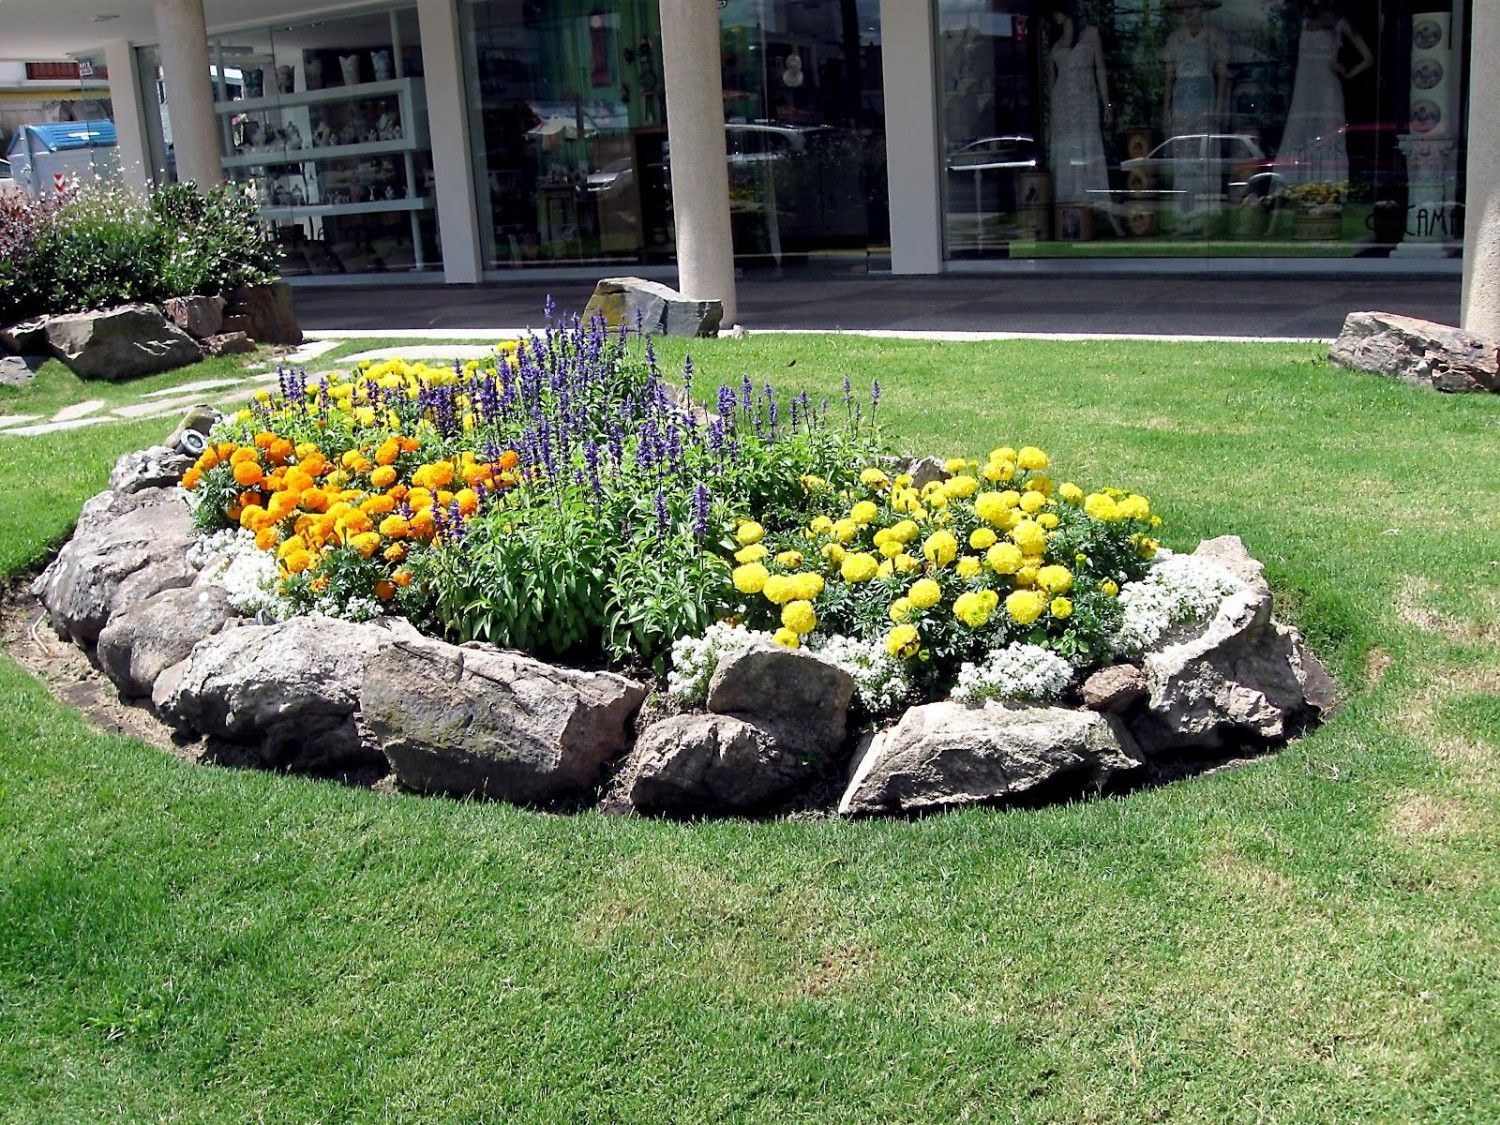 Ordinaire Small Flower Bed Garden Ideas With Natural Rocks